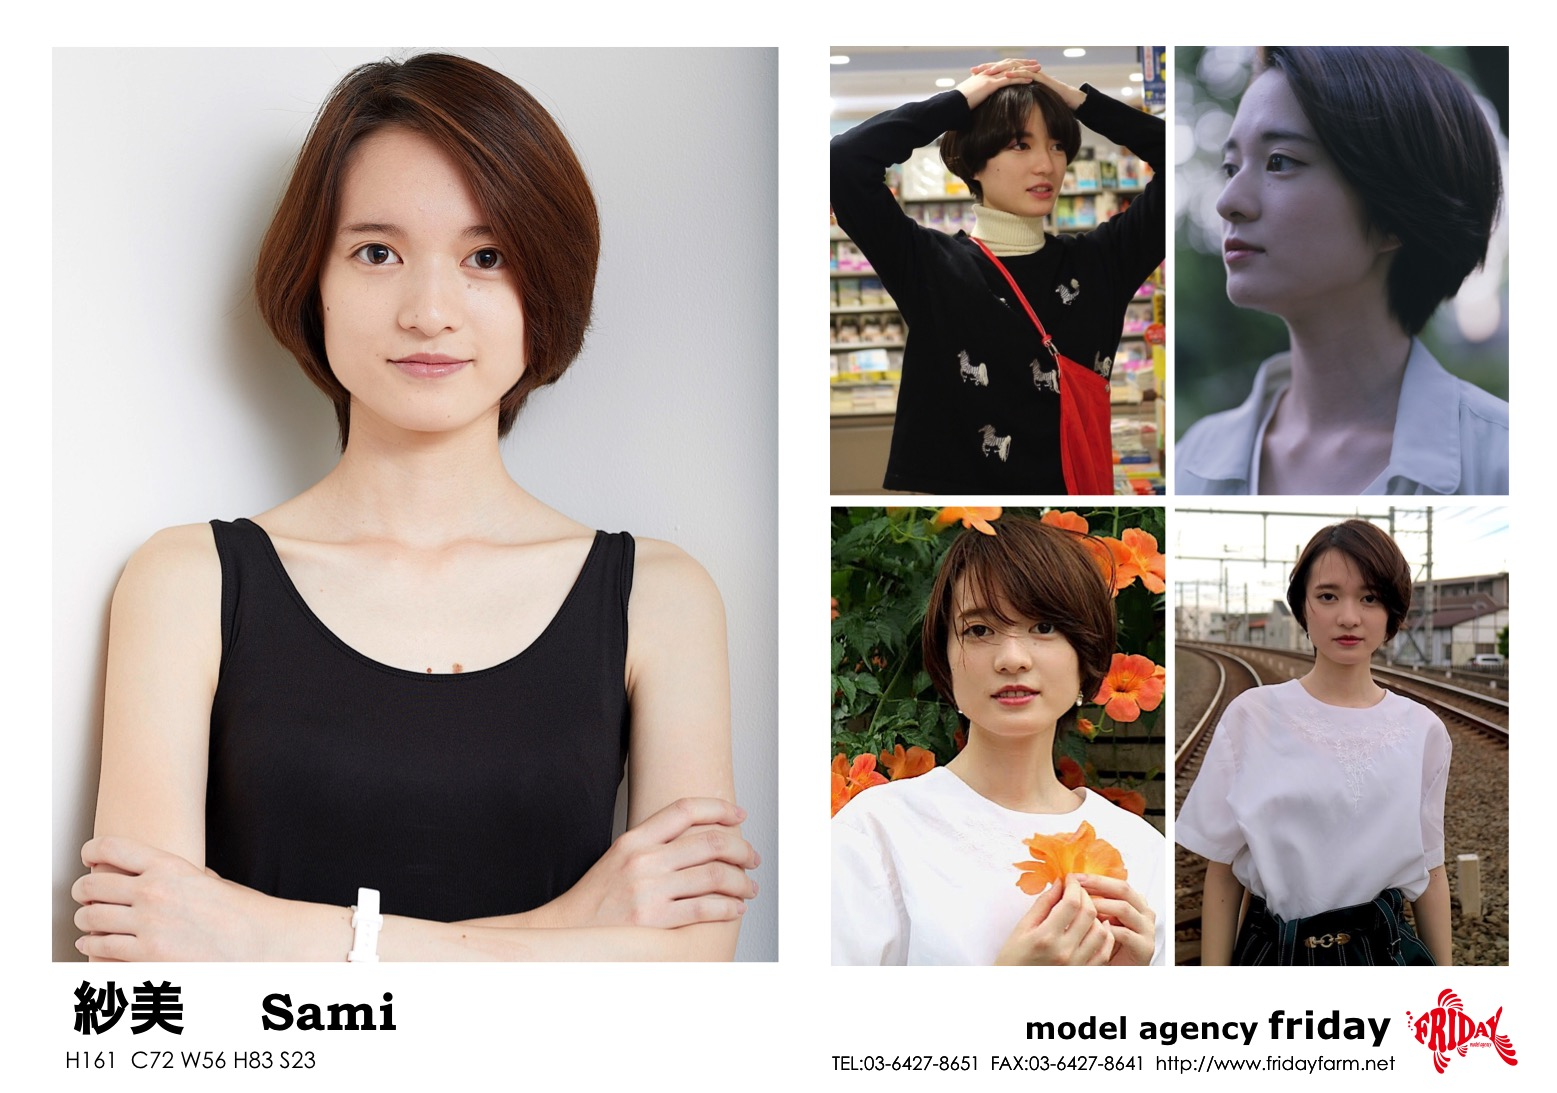 紗美 - Sami | model agency friday